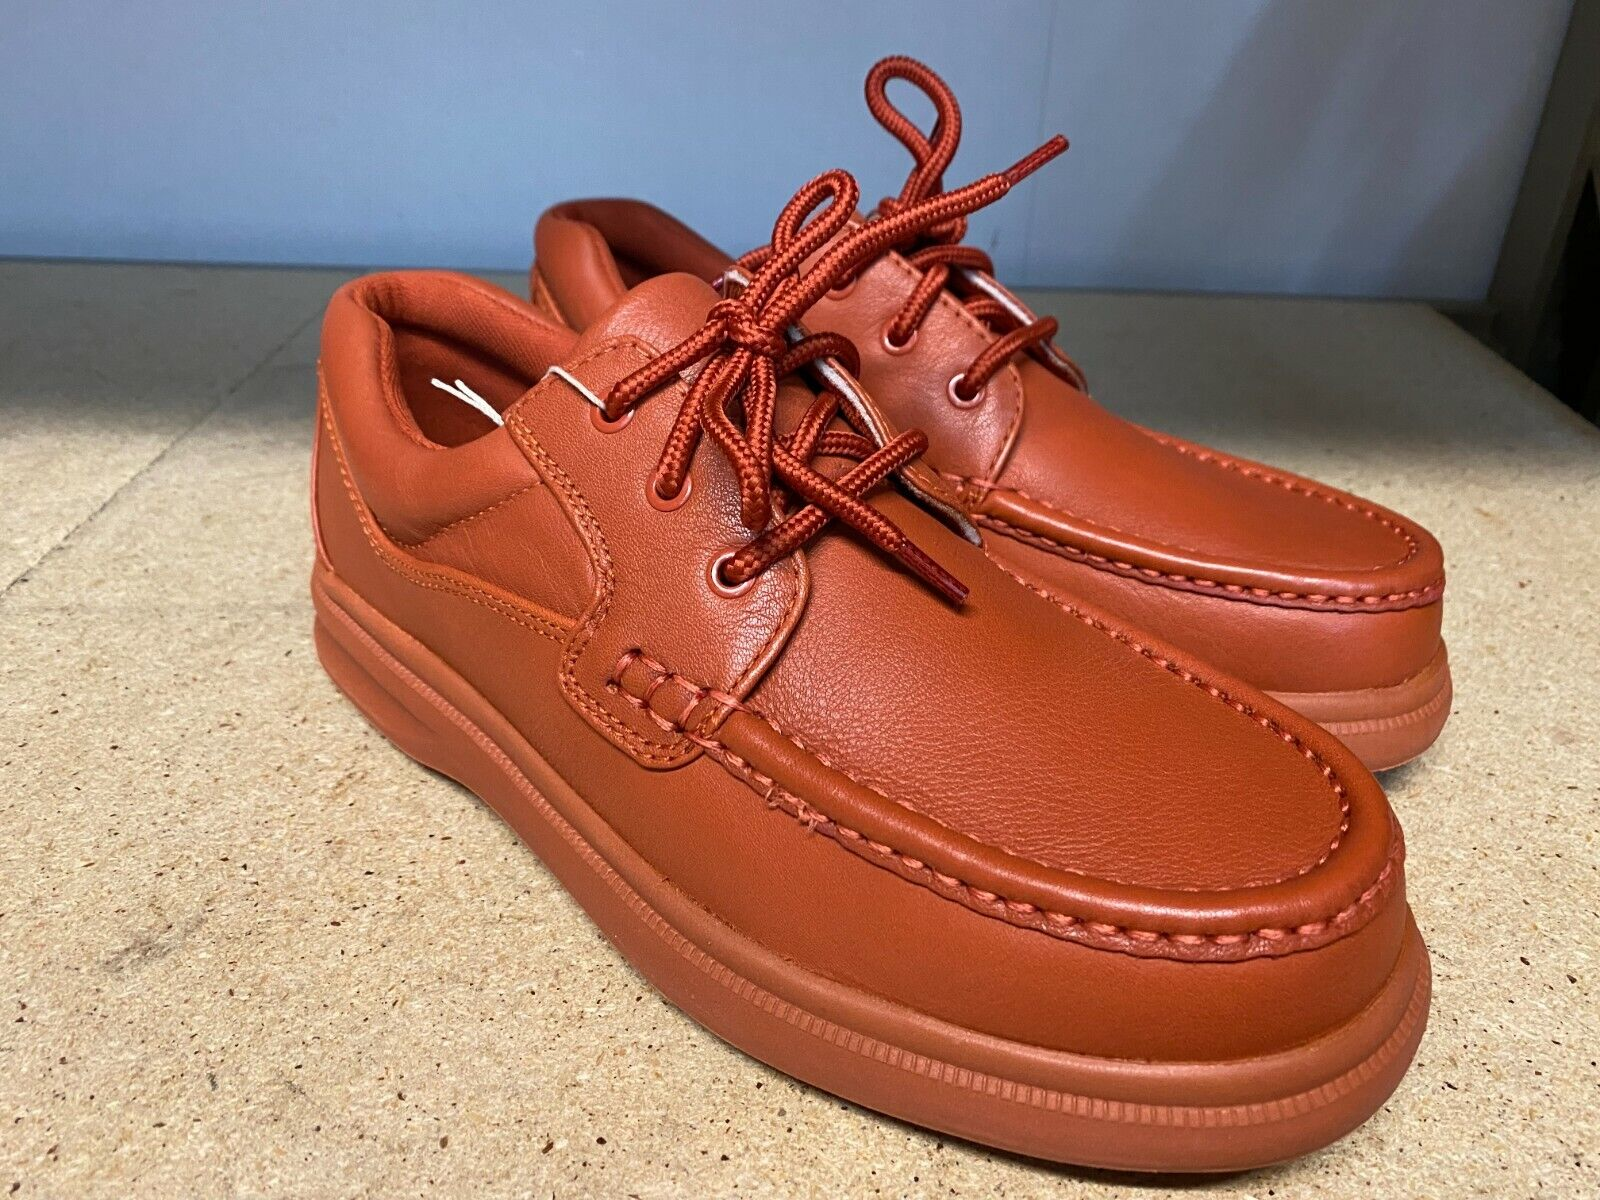 Hush Puppies Gus LaceUp Leather Oxford Walking Shoes Sz 9.5 Red HM01130-206 B17